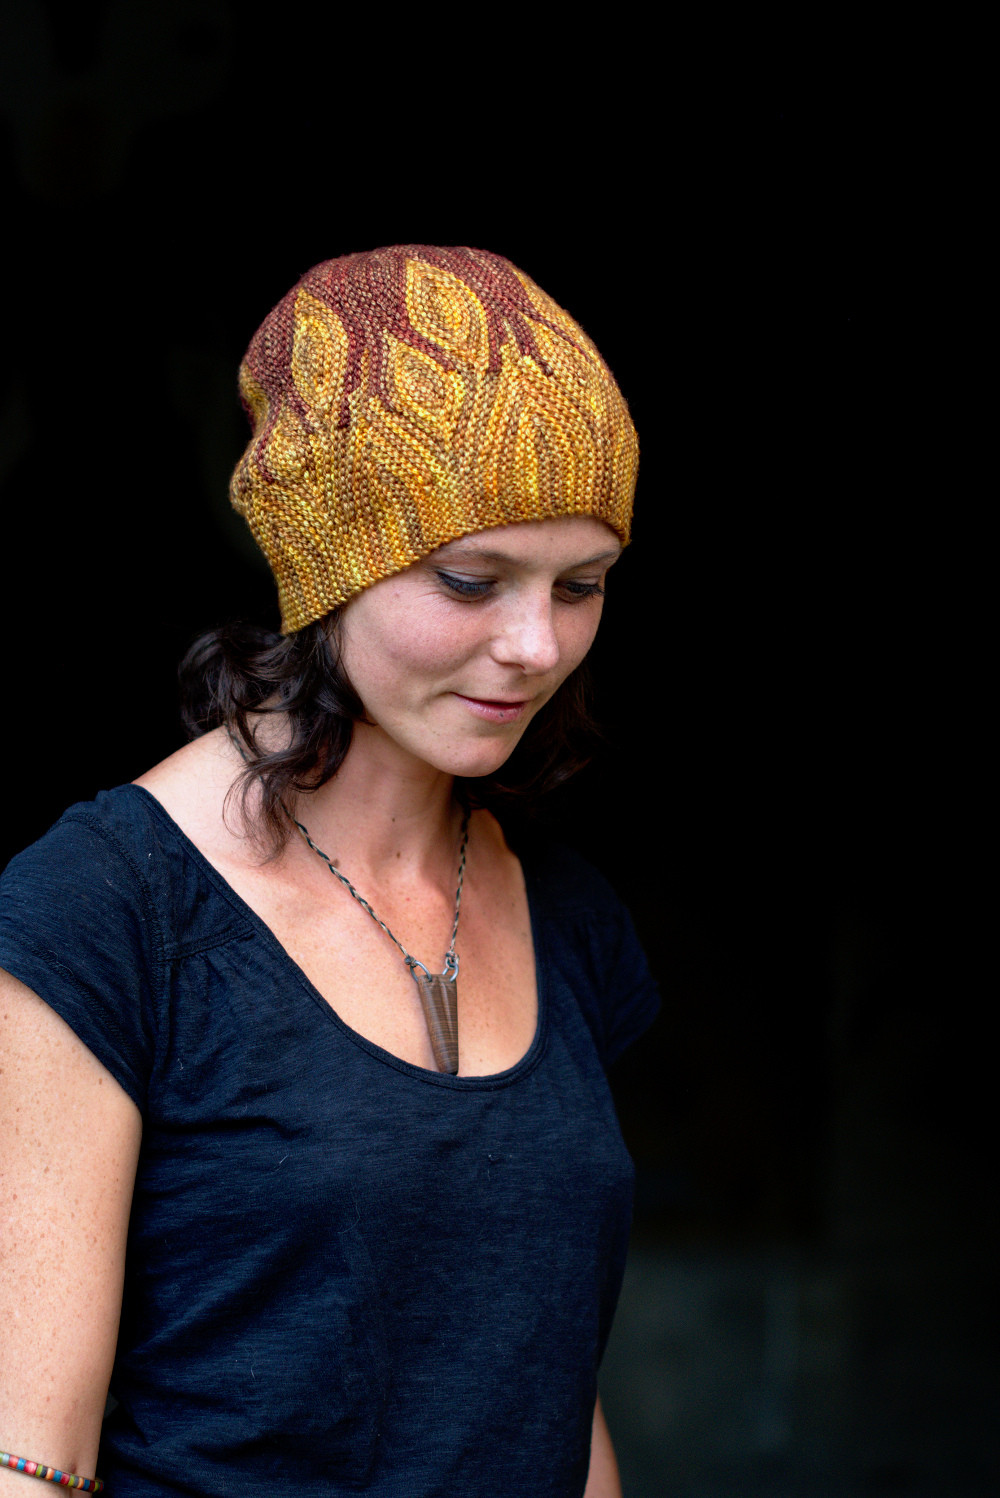 Azula featured flame-like shapes swirling at the brim of the hat. Image © Woolly Wormhead.